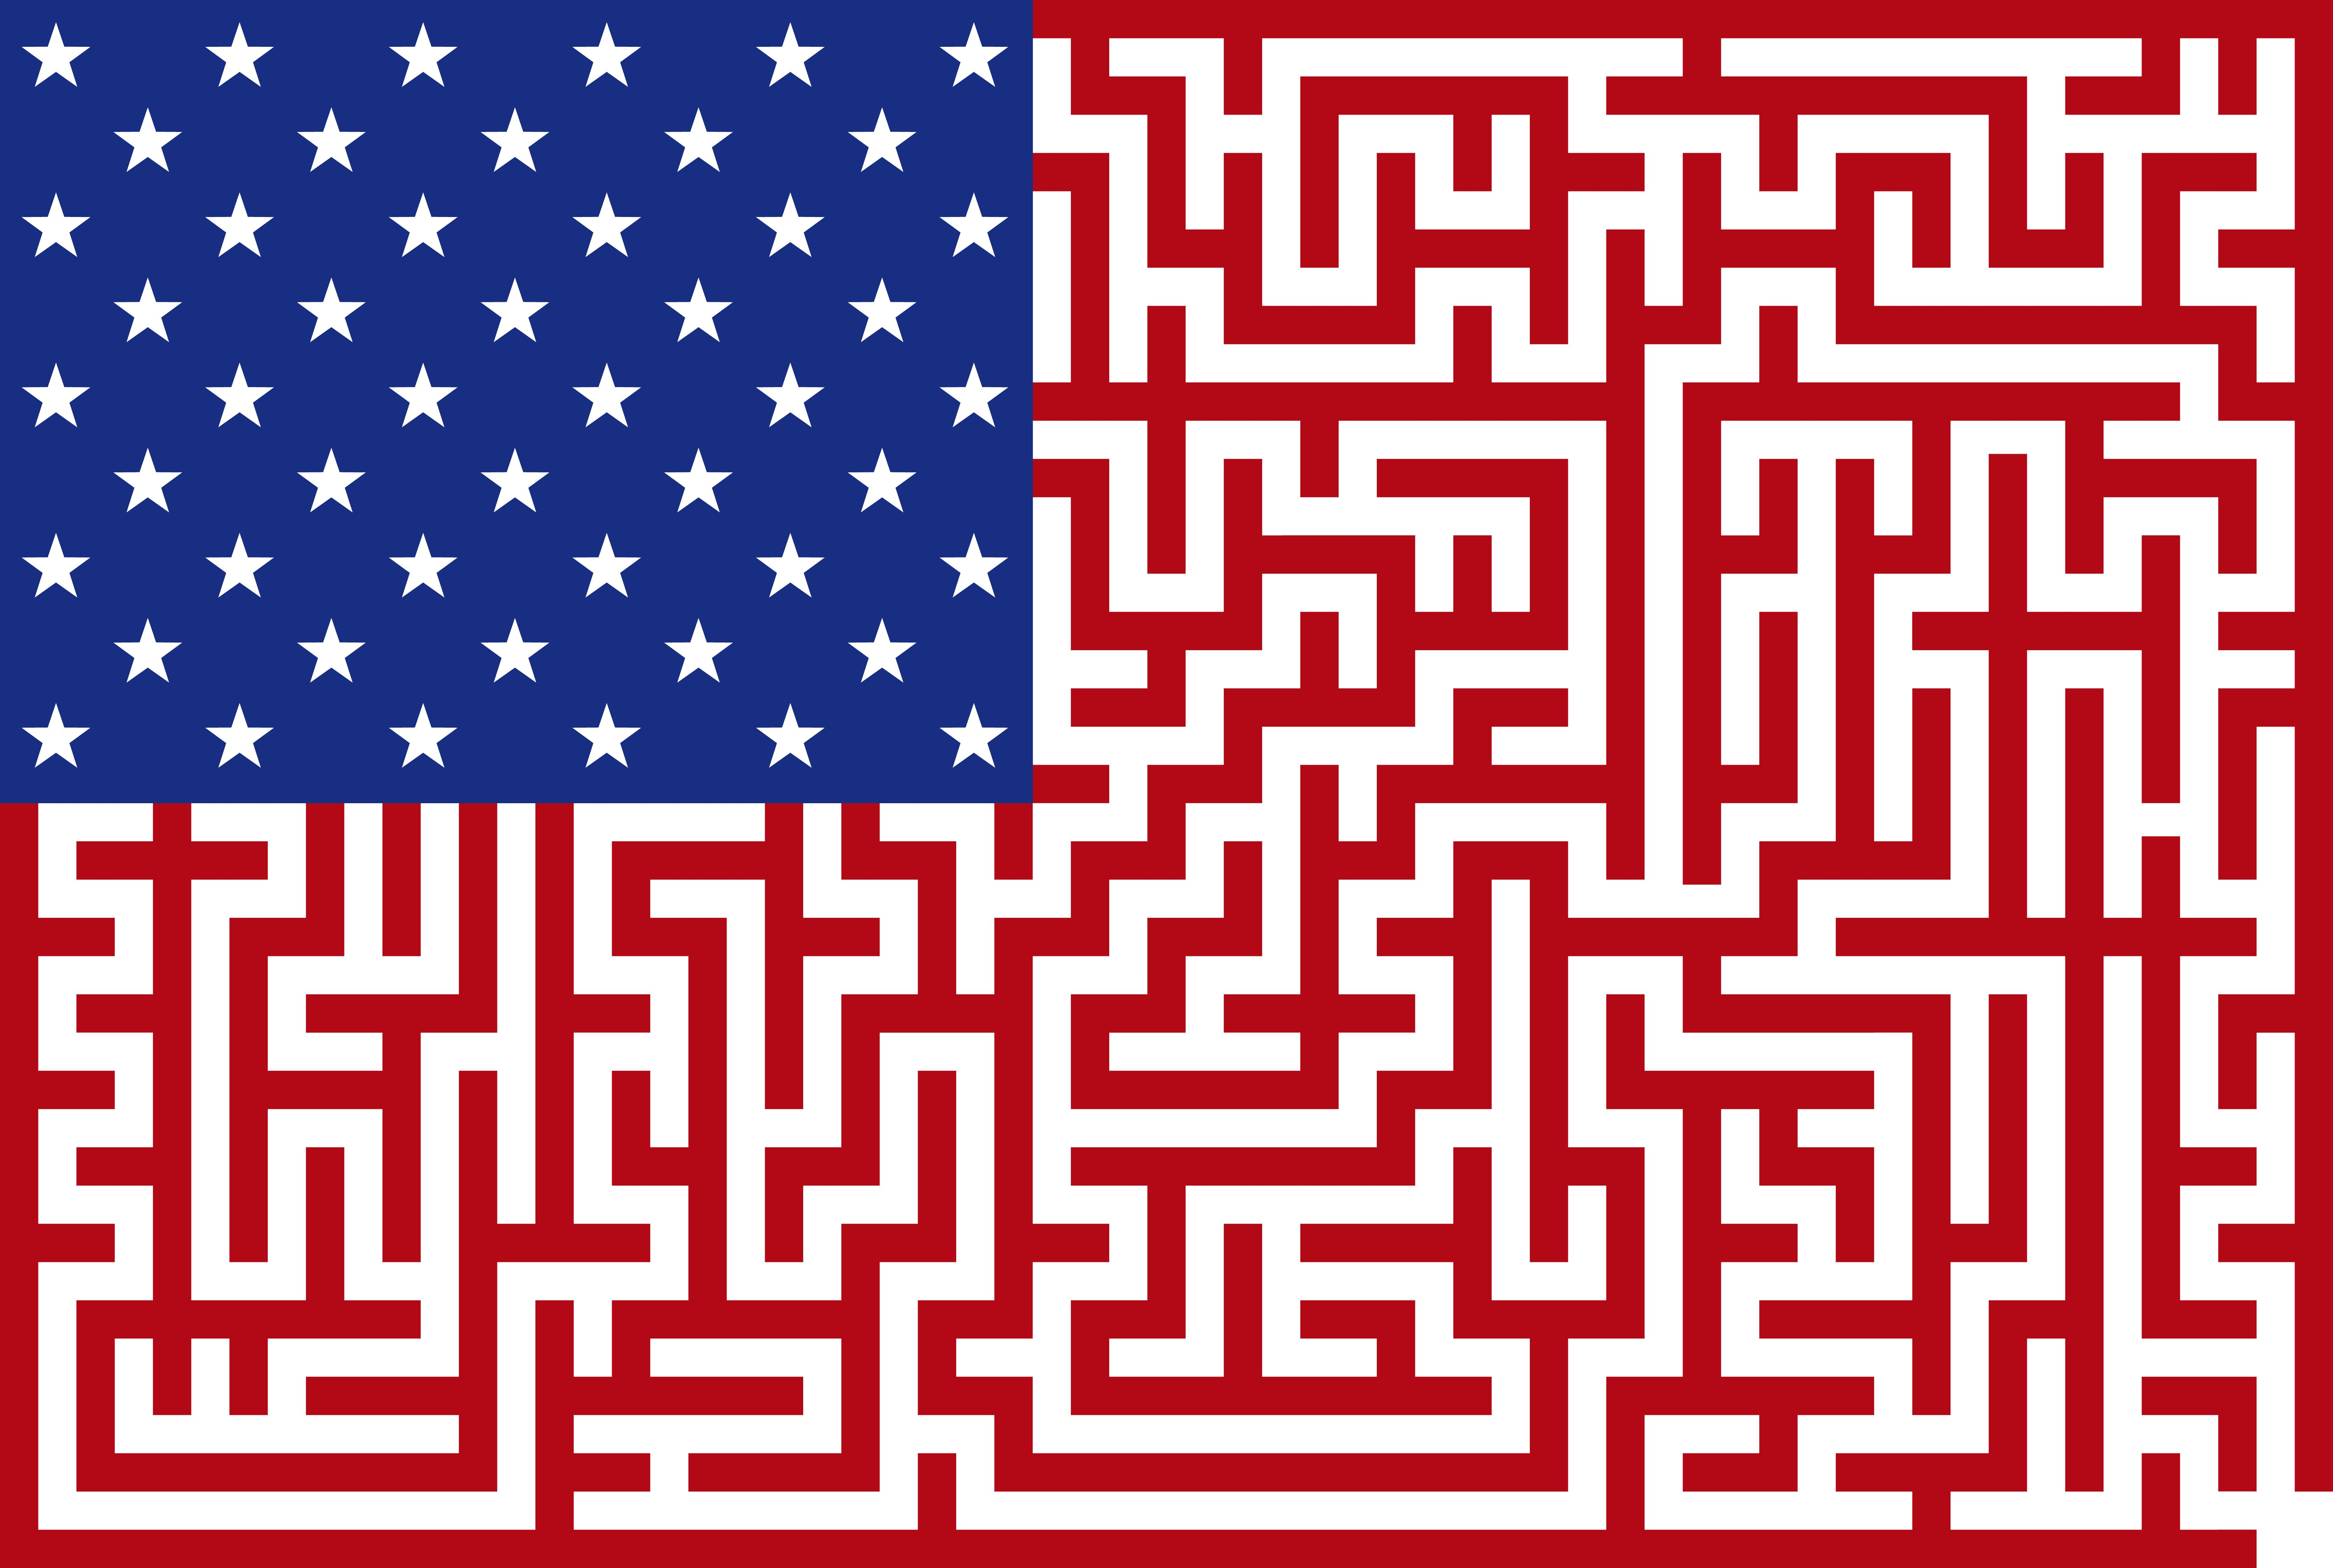 Free Fun Educational And Patriotic Printable Maze For